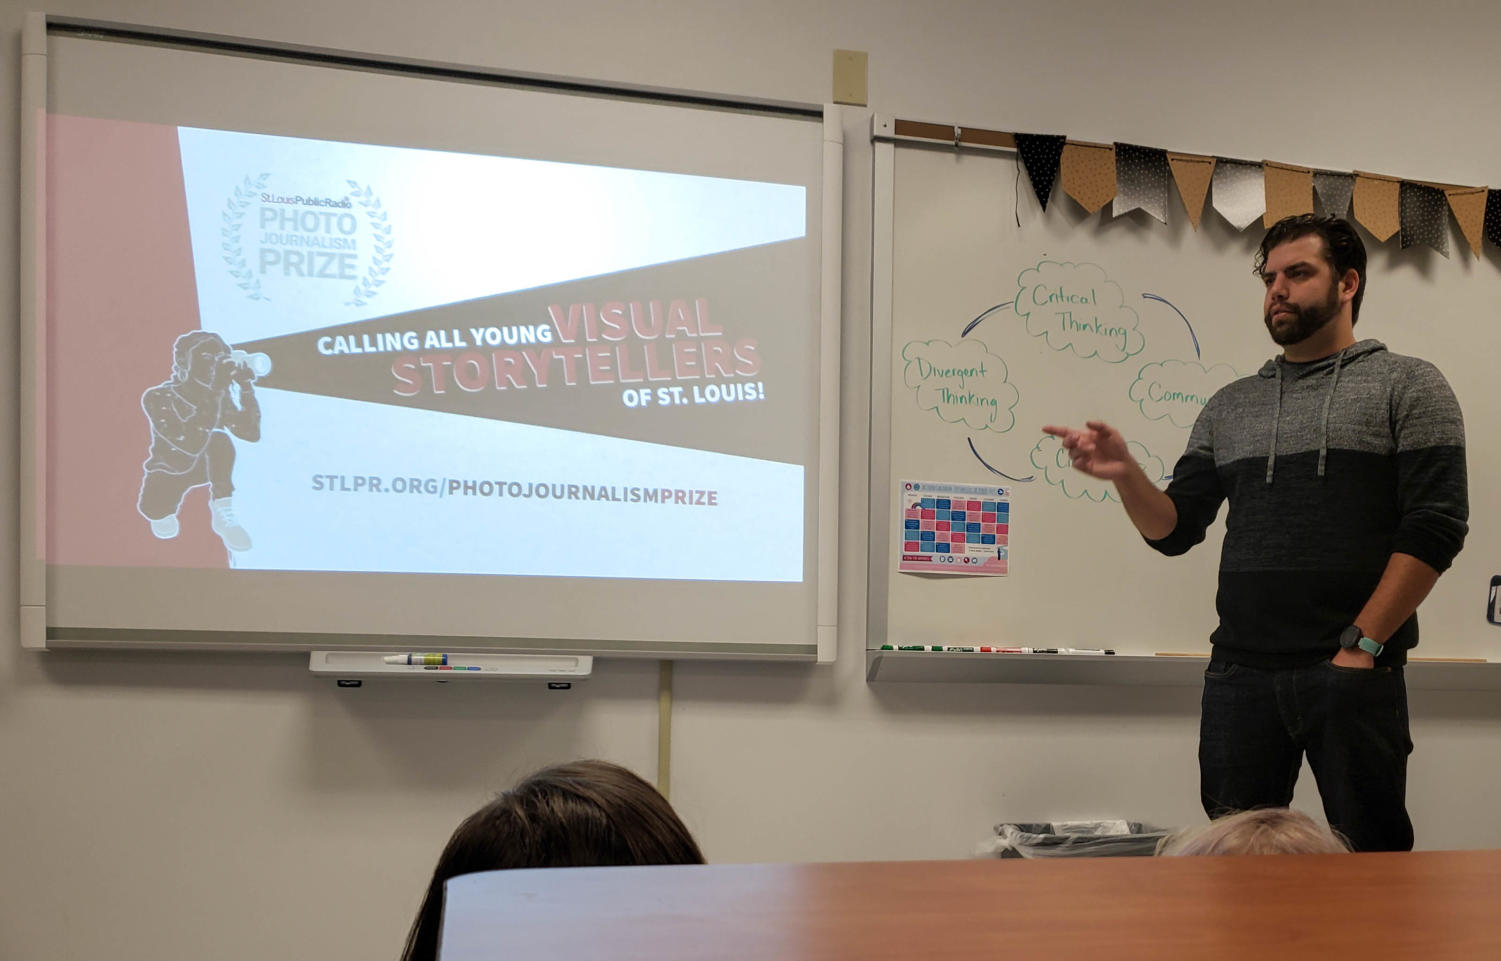 David Kovaluk explains what the photojournalism contest is after giving his presentation to the first hour graphic design, journalism and photography classes.